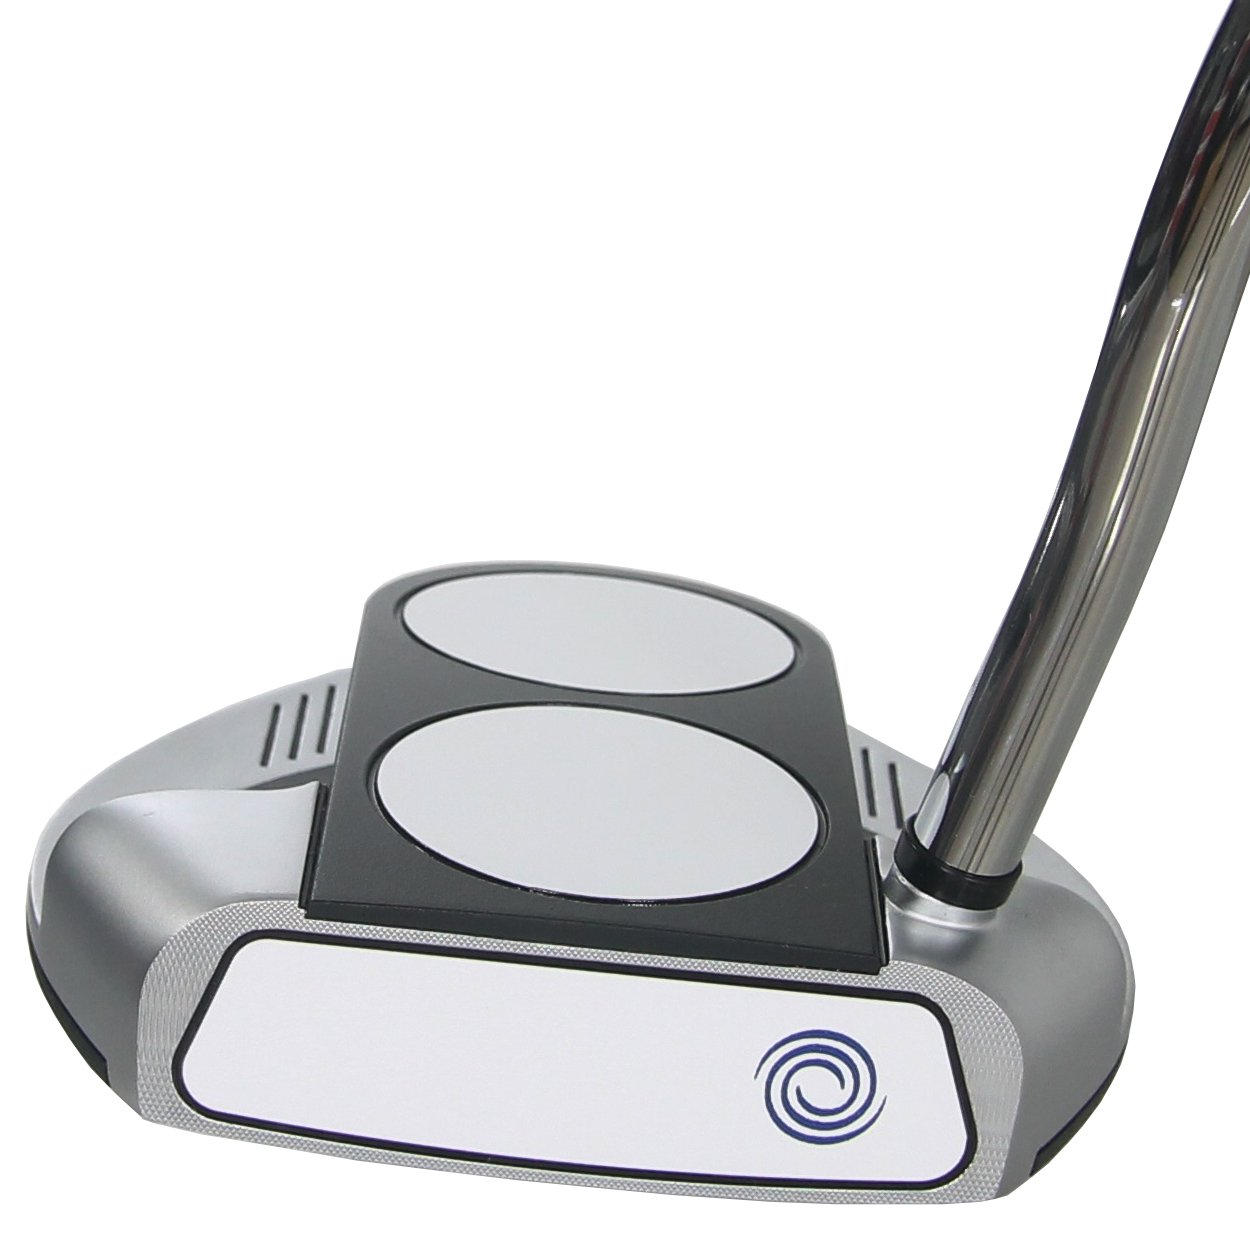 Odyssey Golf Works 2-Ball Fang Tank Putter with SuperStroke Grip